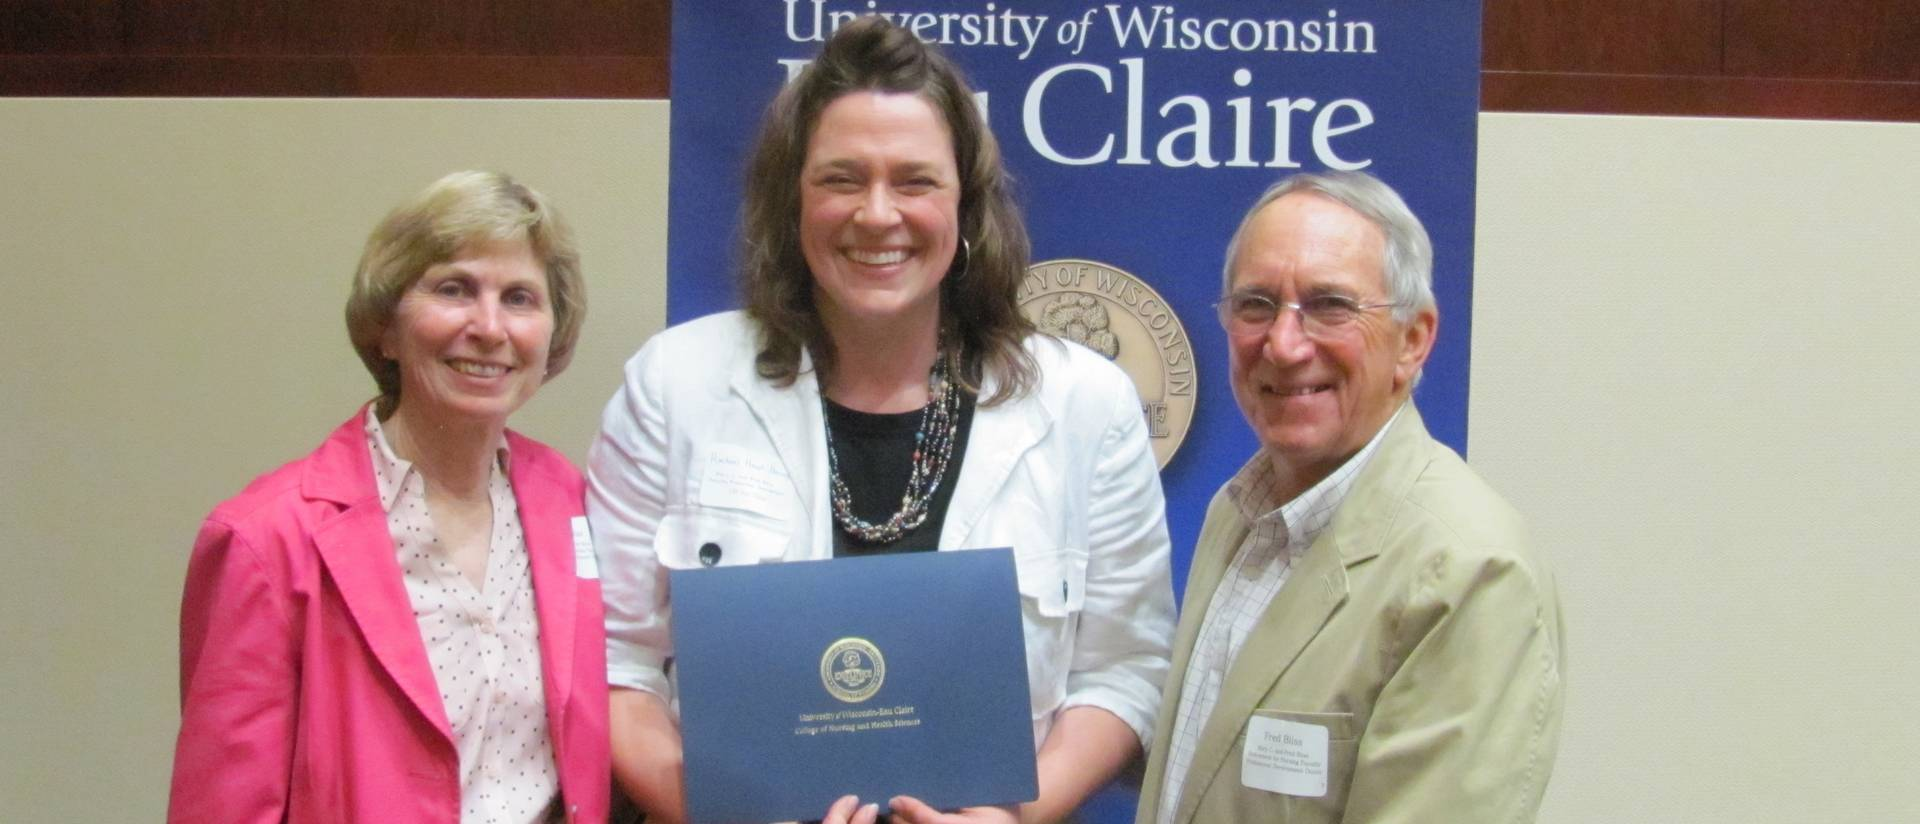 Dr. Rachael Haupt-Harrington and Mary C. and Fred Bliss